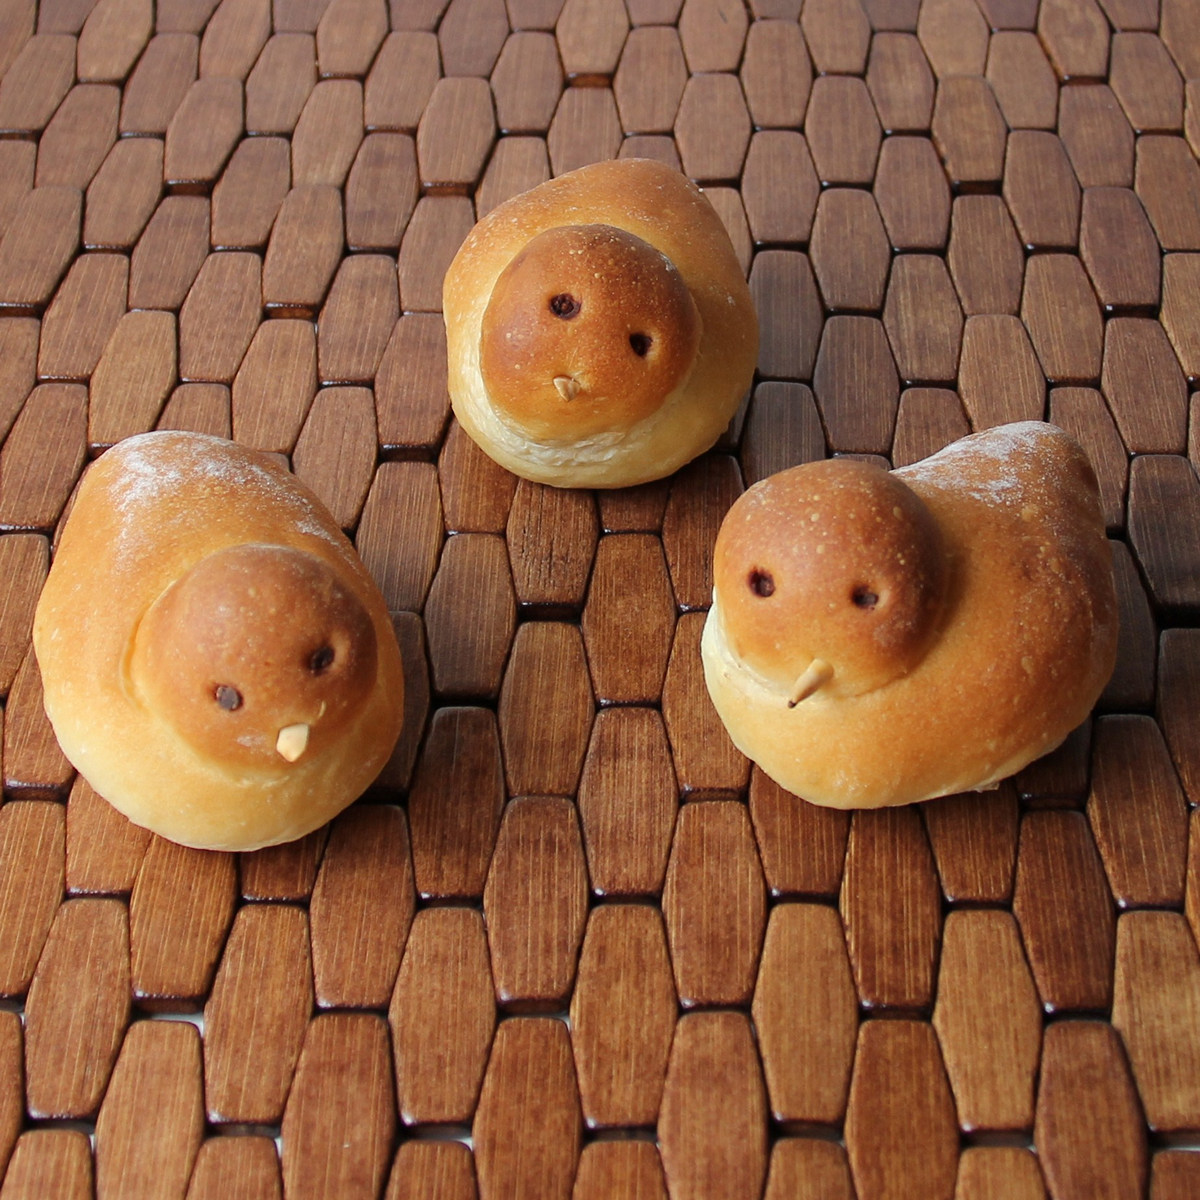 Cookistry Birdie Bread adorable buns shaped like little